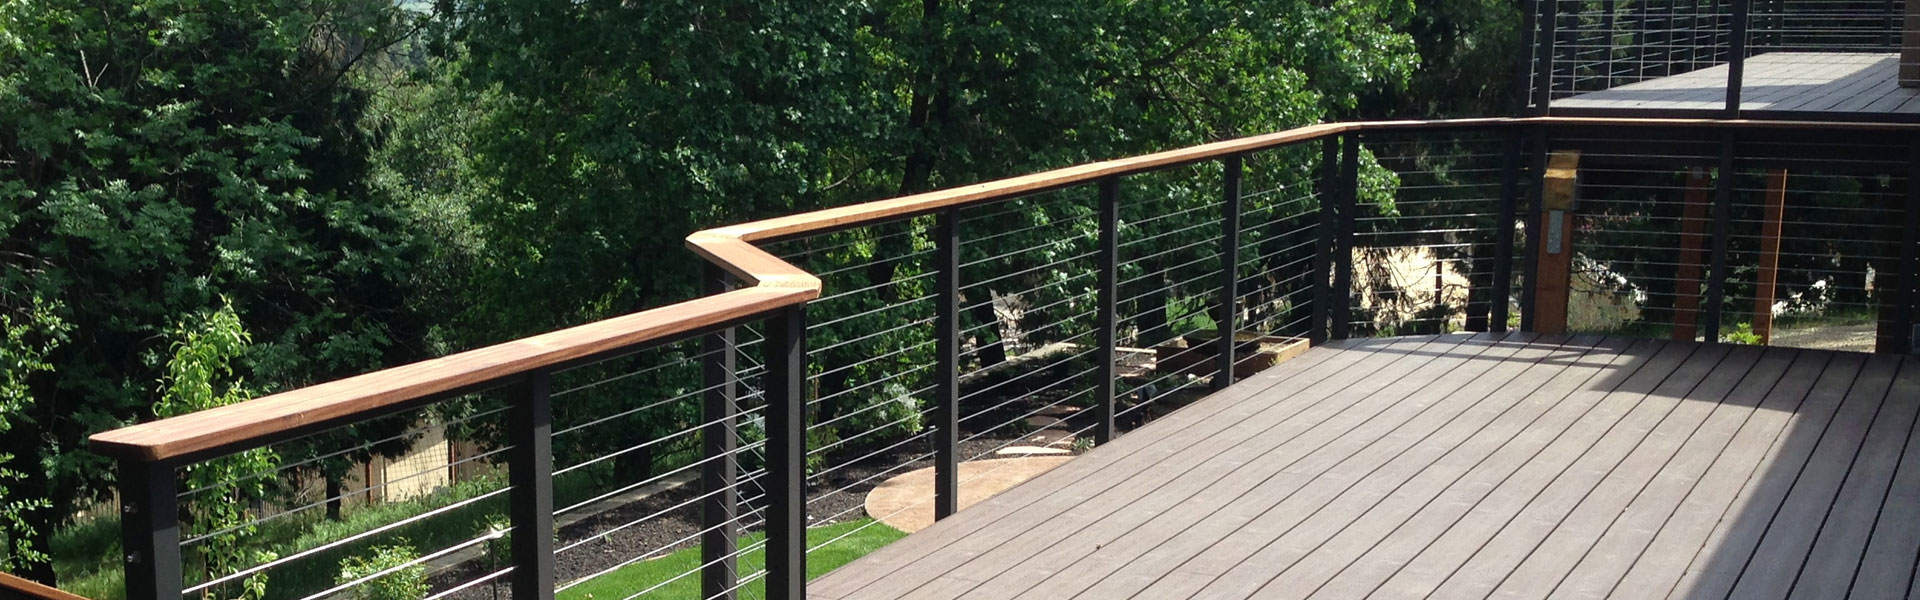 Modern Deck Rails: Glass vs Cable